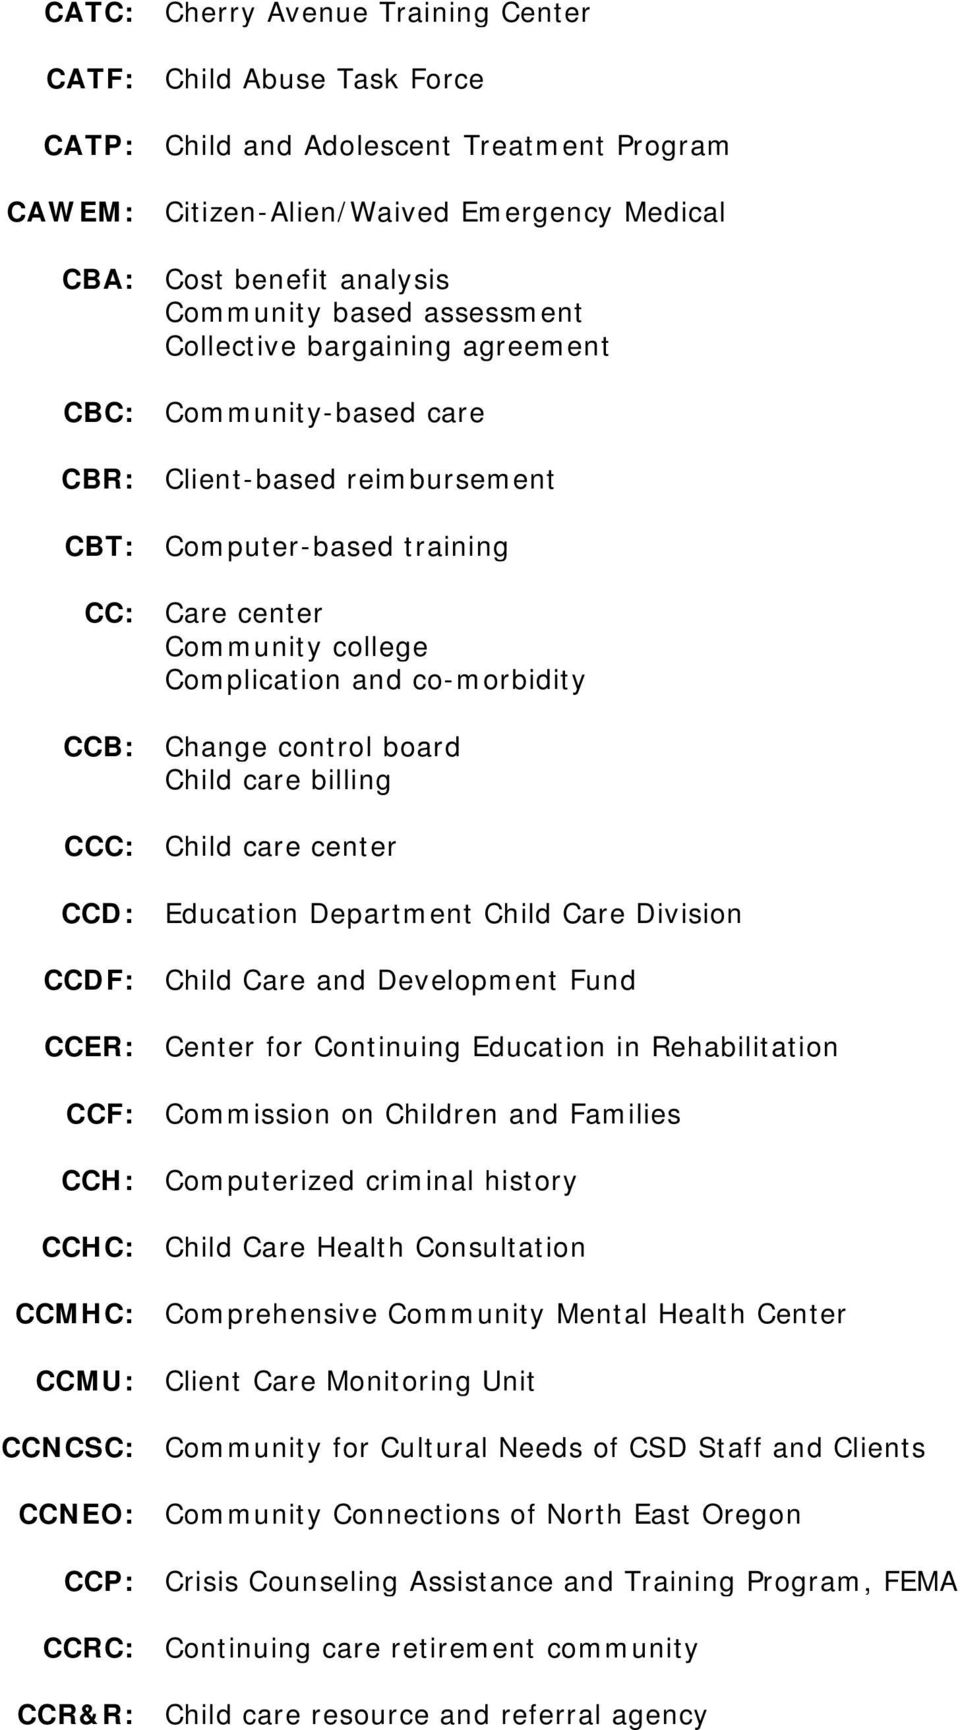 Change control board Child care billing CCC: Child care center CCD: Education Department Child Care Division CCDF: Child Care and Development Fund CCER: Center for Continuing Education in